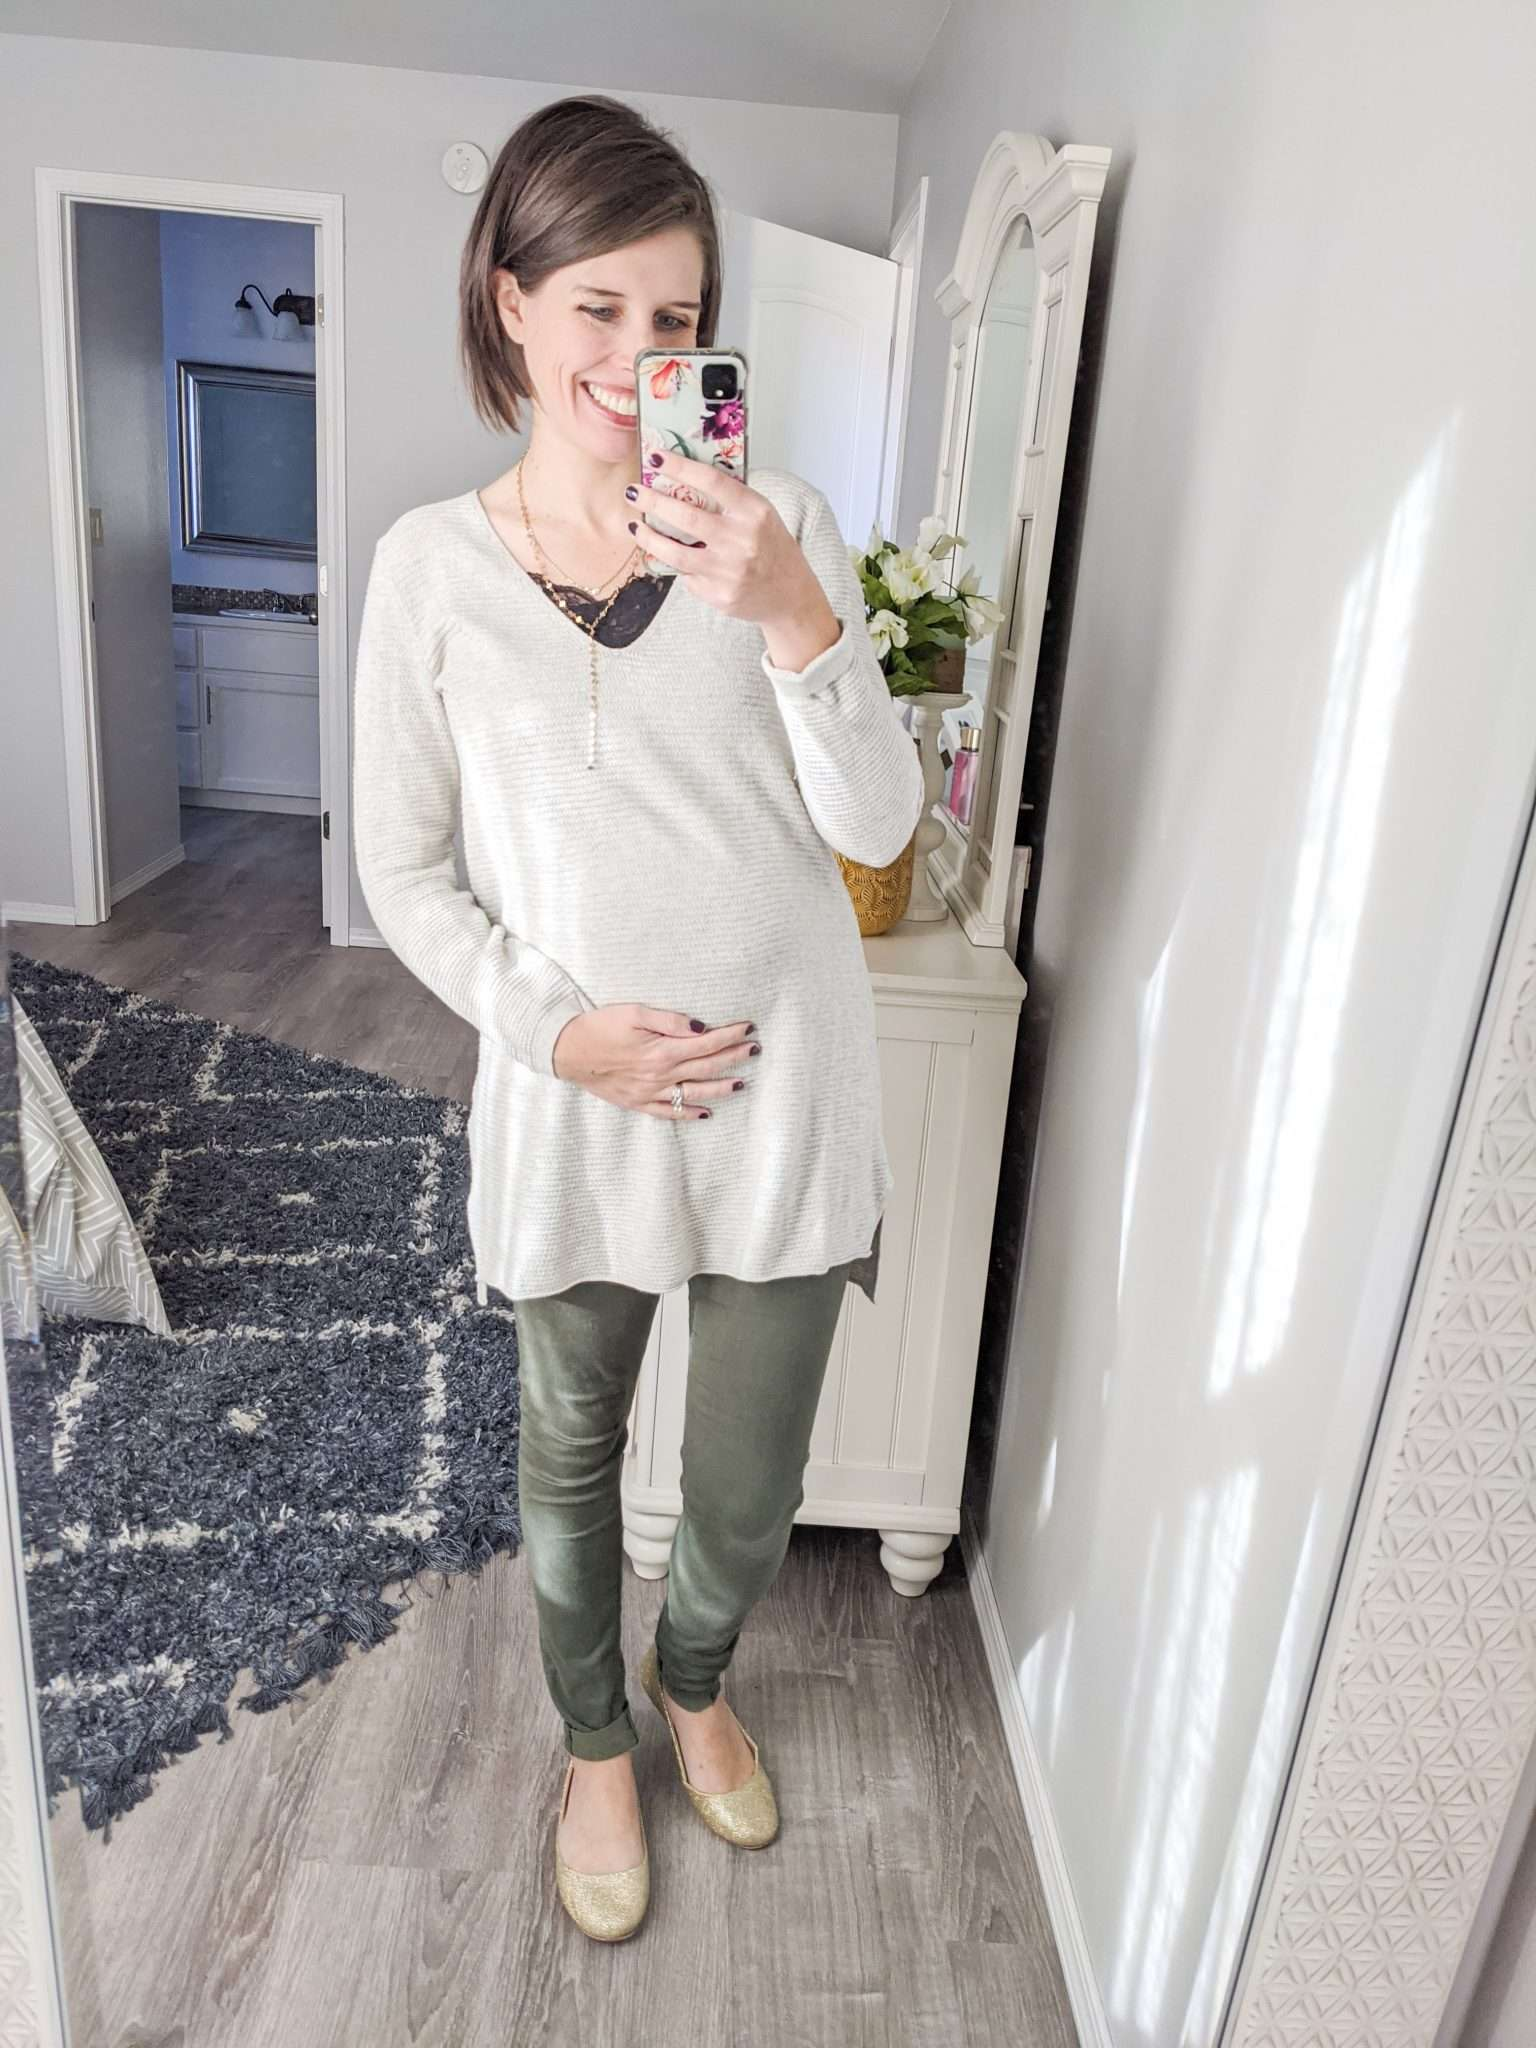 How to Put Together Complete Outfits from Your Maternity Capsule Wardrobe - What to wear when pregnant - What kind of clothes to wear during pregnancy (7)